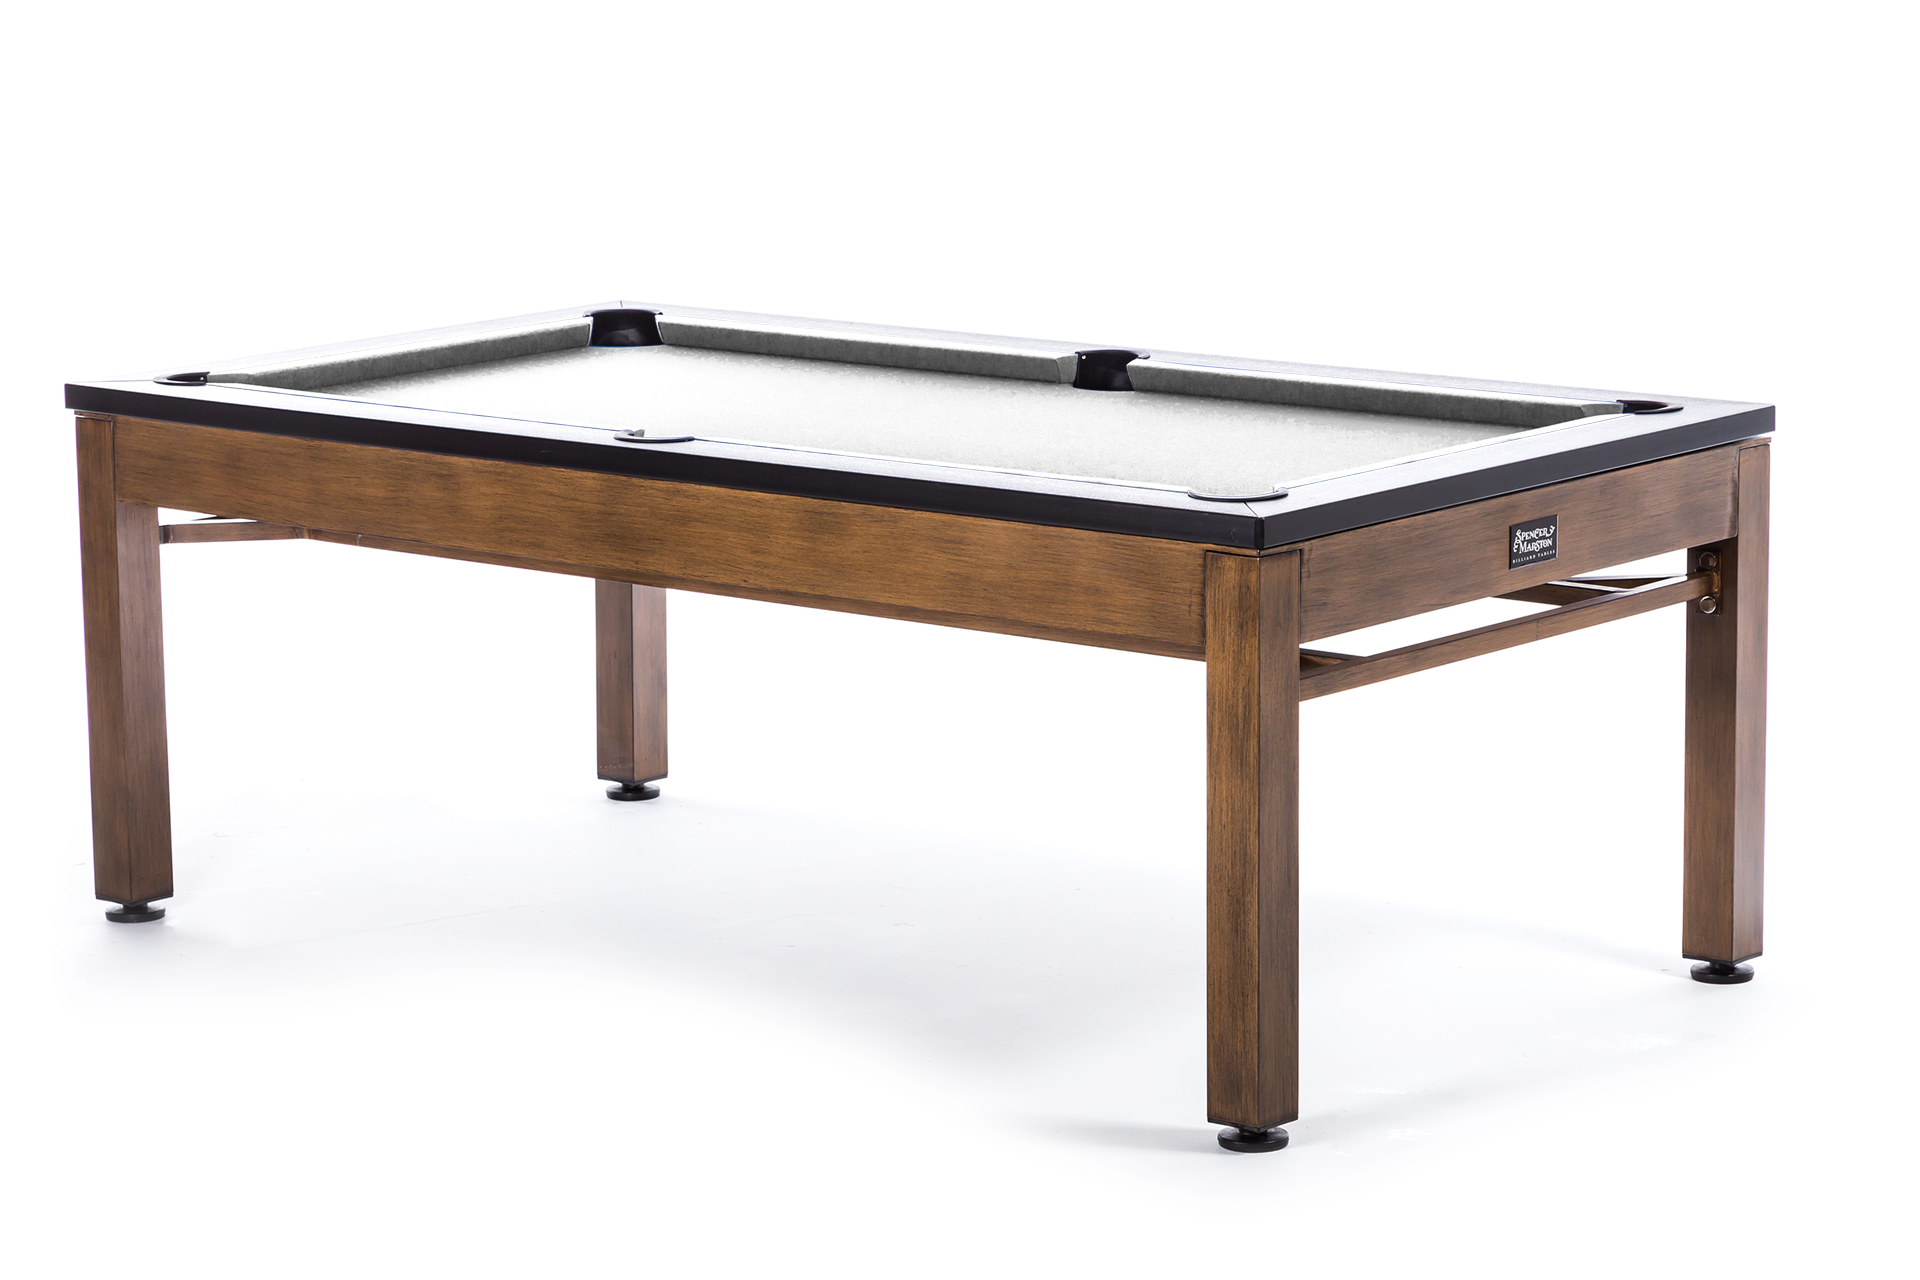 Why Not Enjoy The Great Outdoors And Play A Of Pool With Family Friends Spencer Marston Tucson Outdoor Table